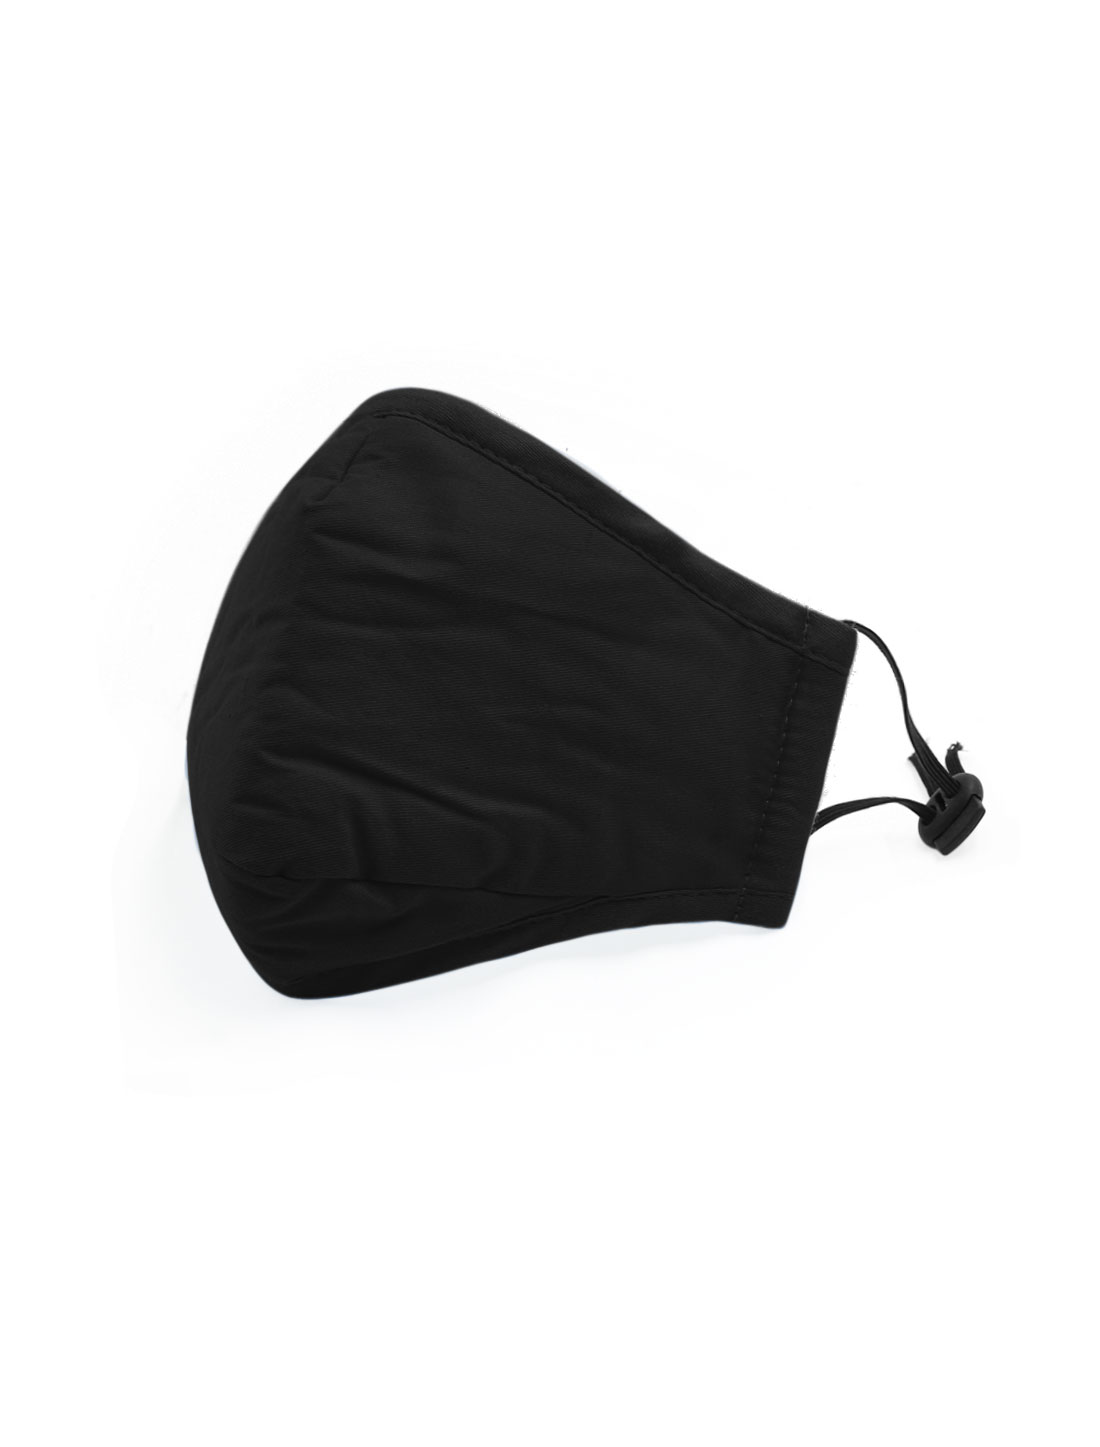 Unisex Anti-dust Face Mask w Activated Carbon Filter Black